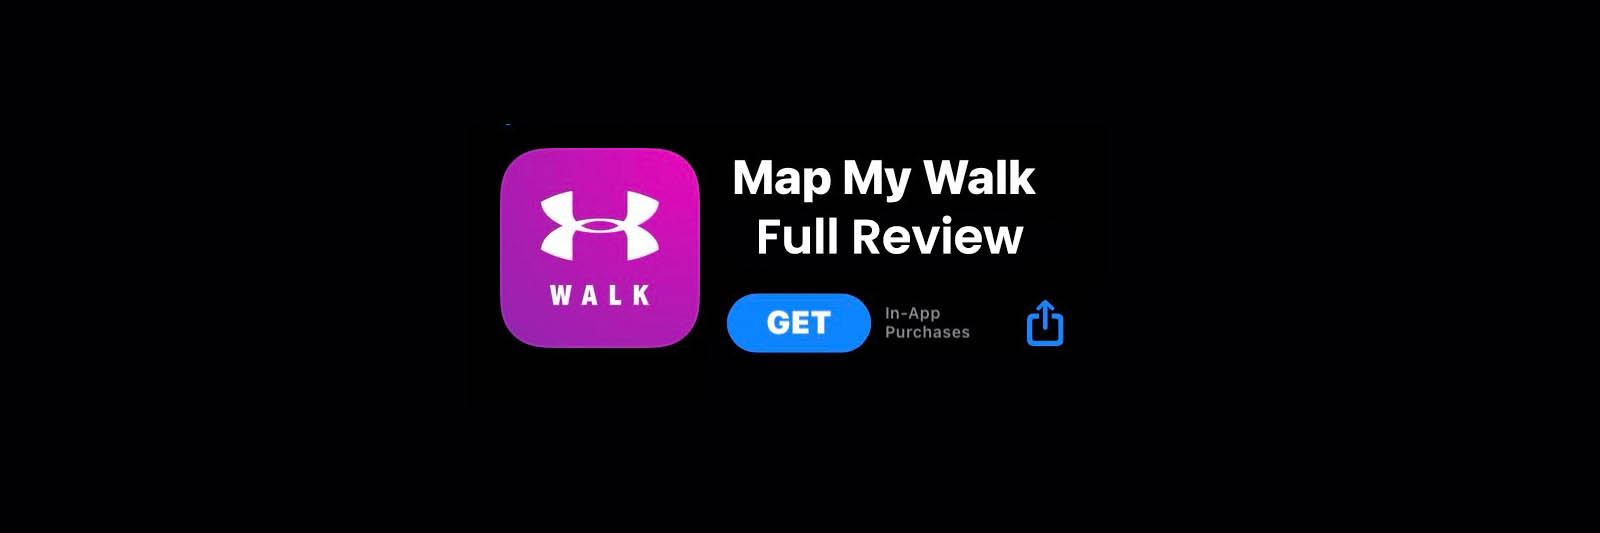 map-my-walk-review